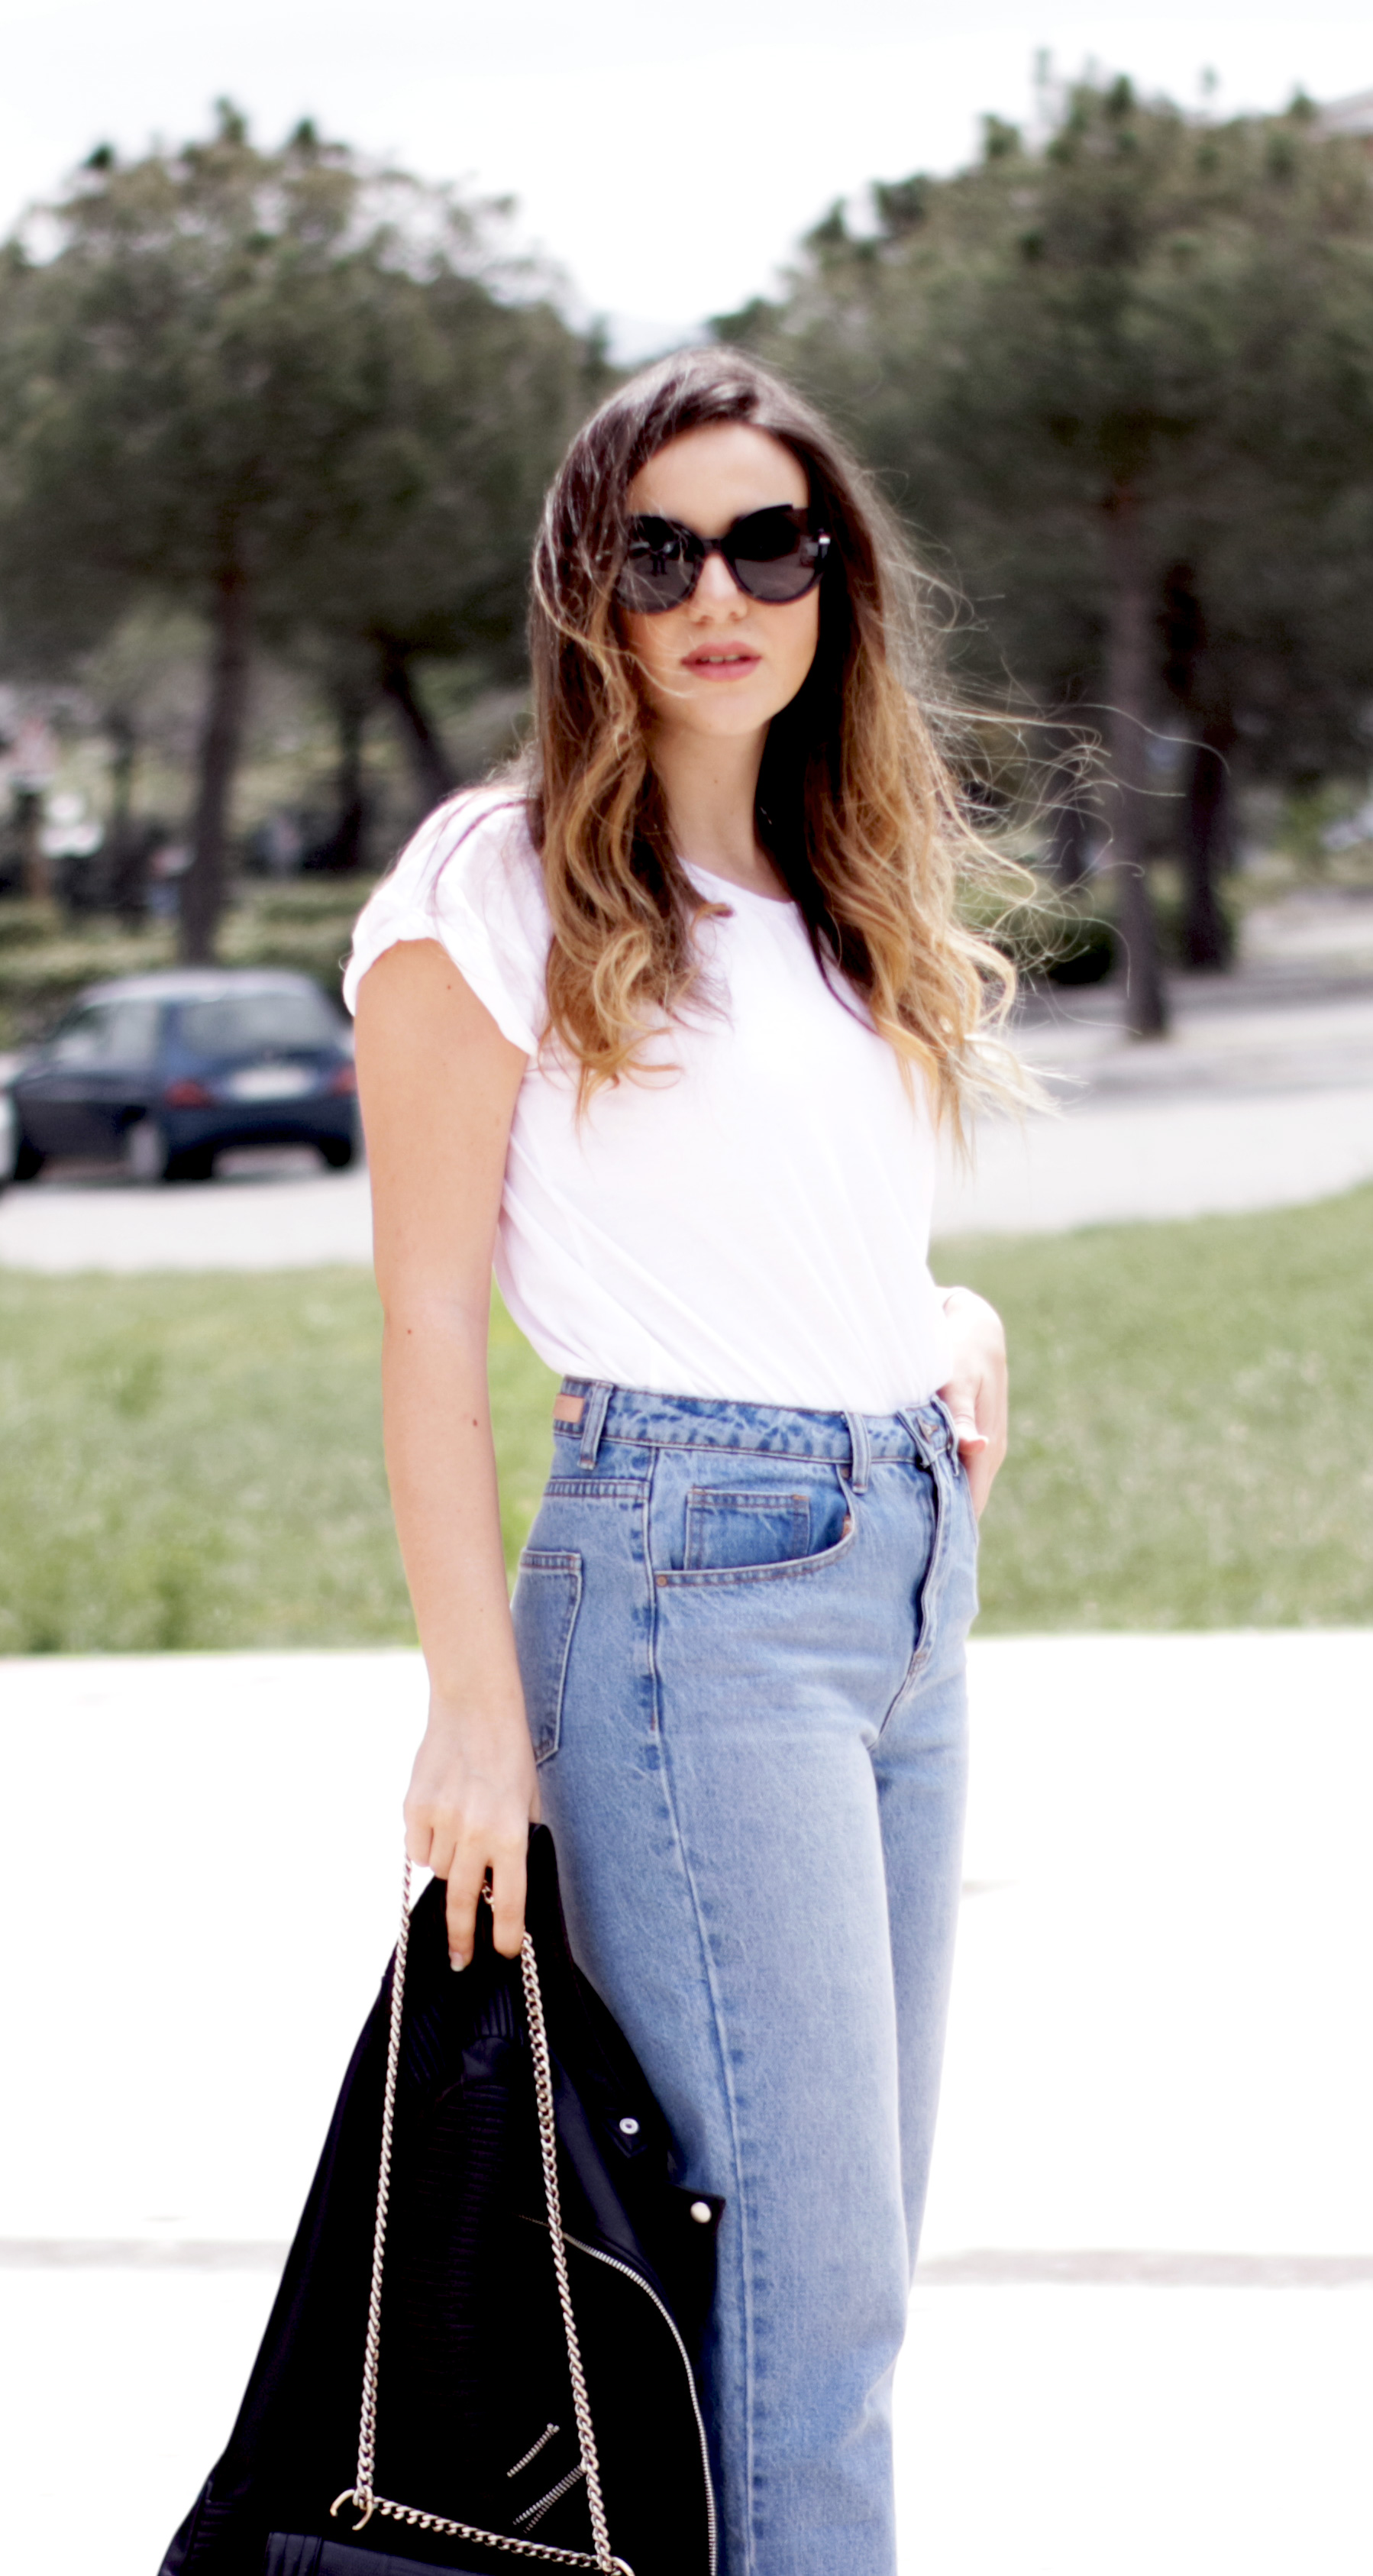 mom-jeans-biker-jacket-fringed-sandals